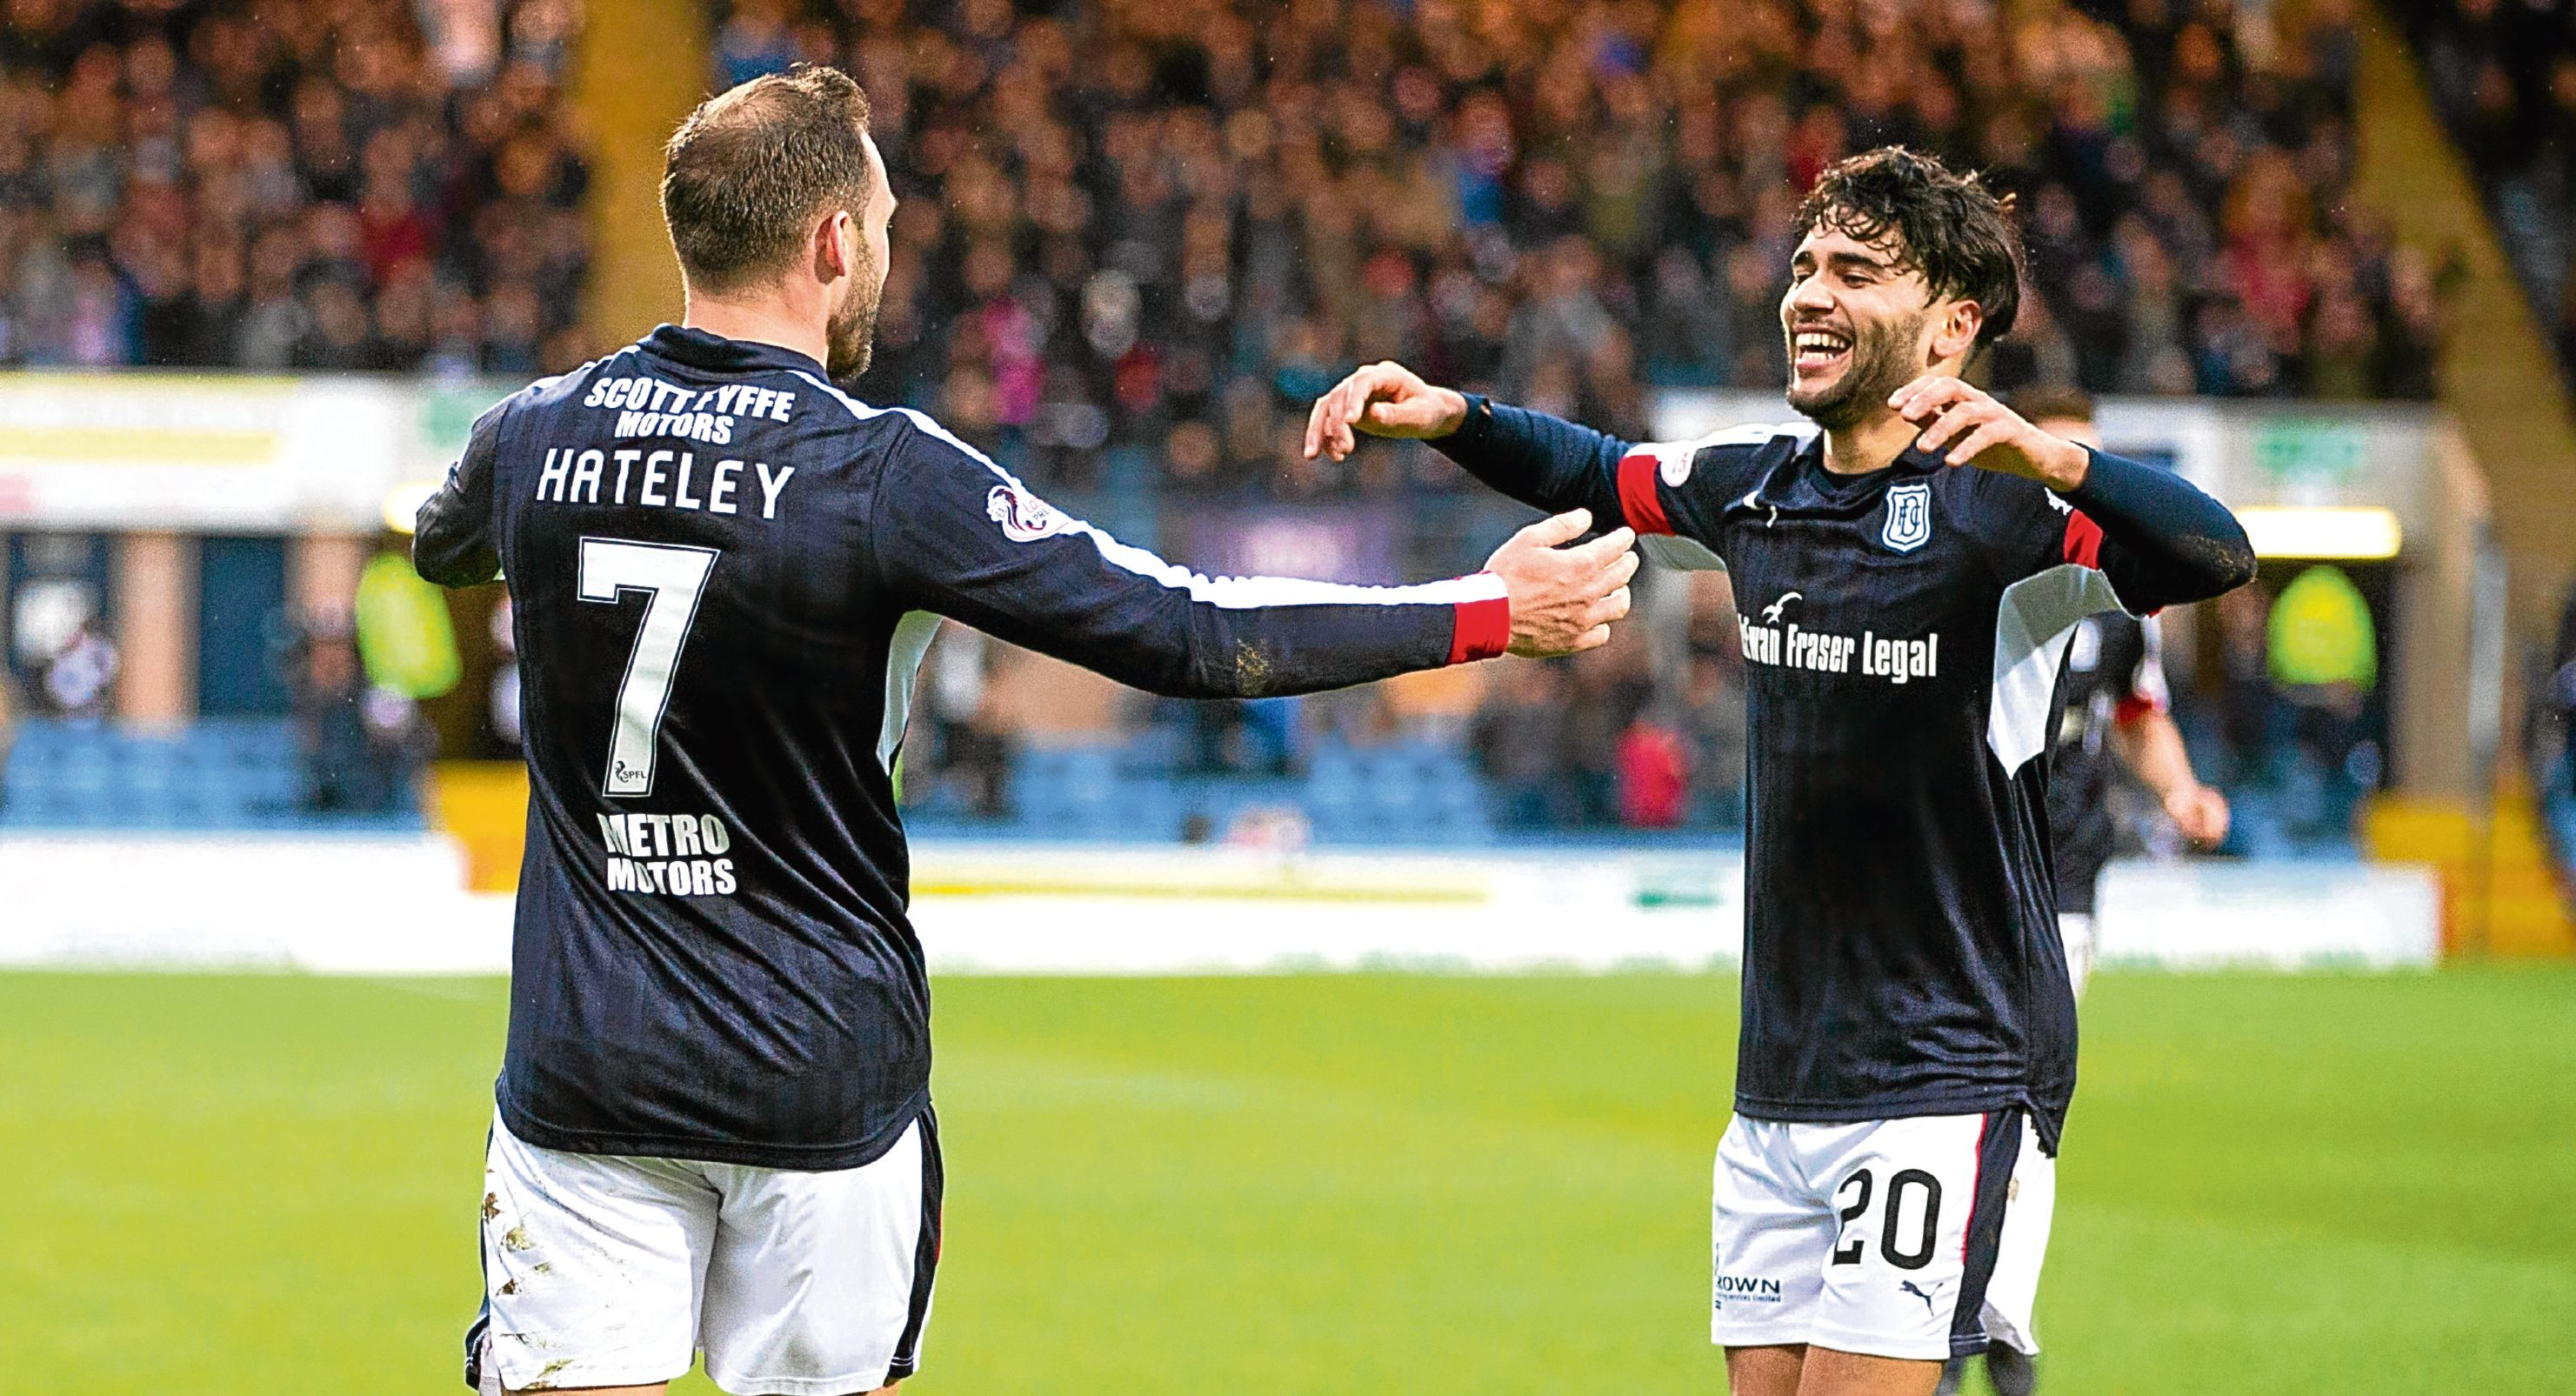 Since signing for Dundee in the summer, Faissal El Bakhtaoui has taken time to adapt to Premiership life but scored in the 3-0 win over St Johnstone.